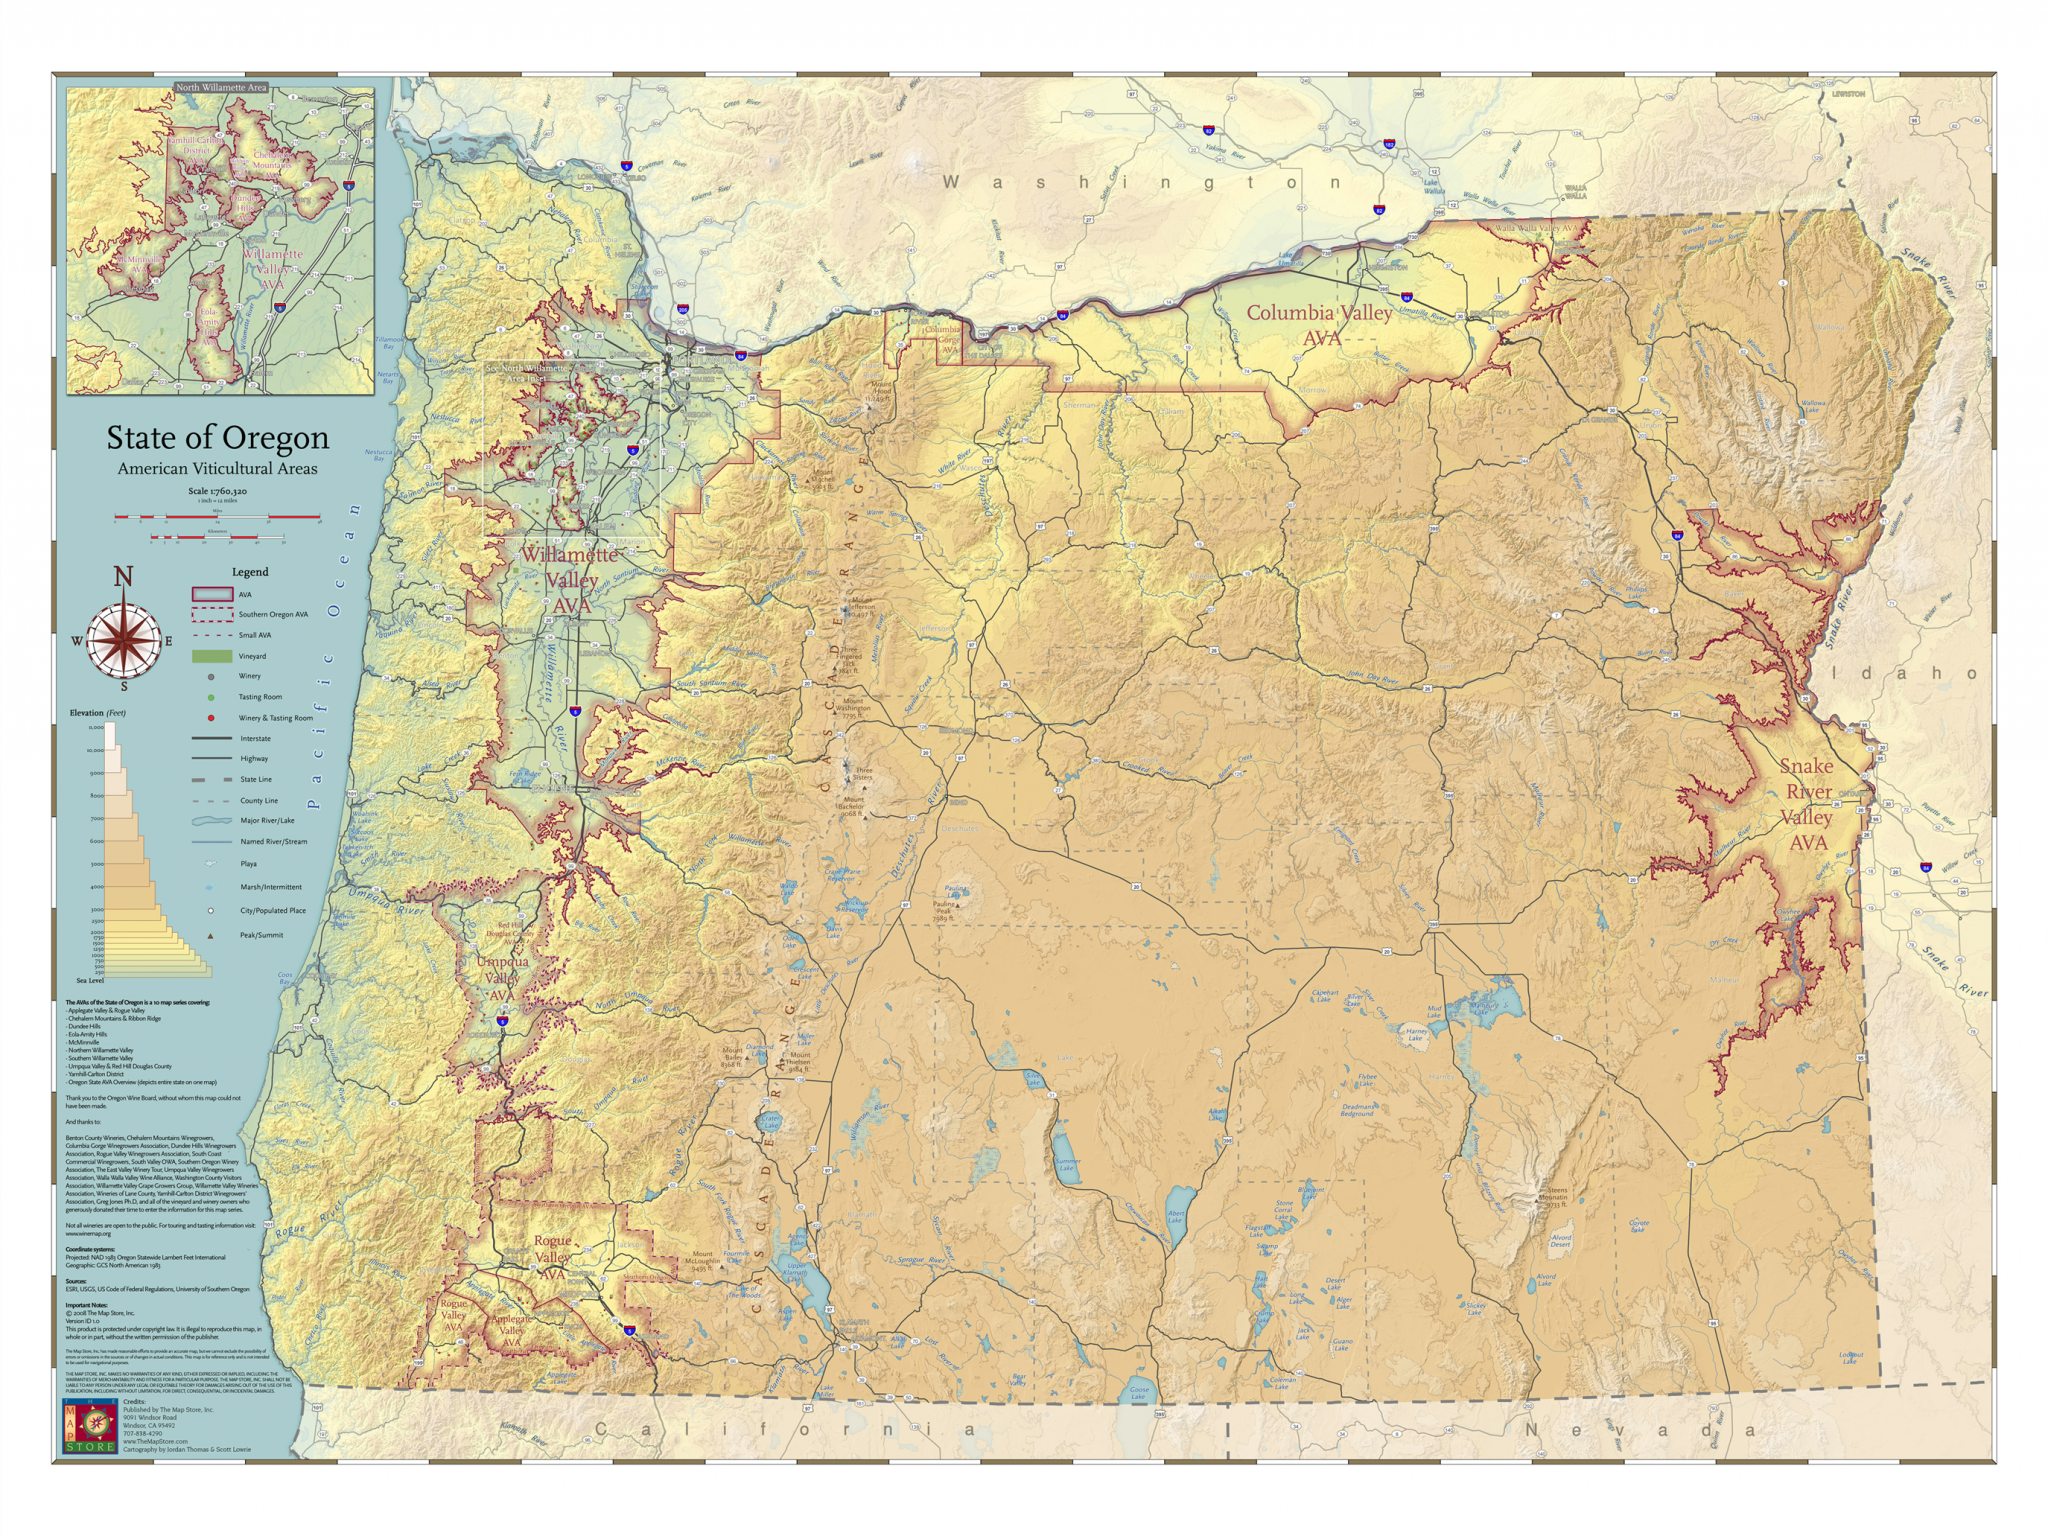 Oregon's wine regions